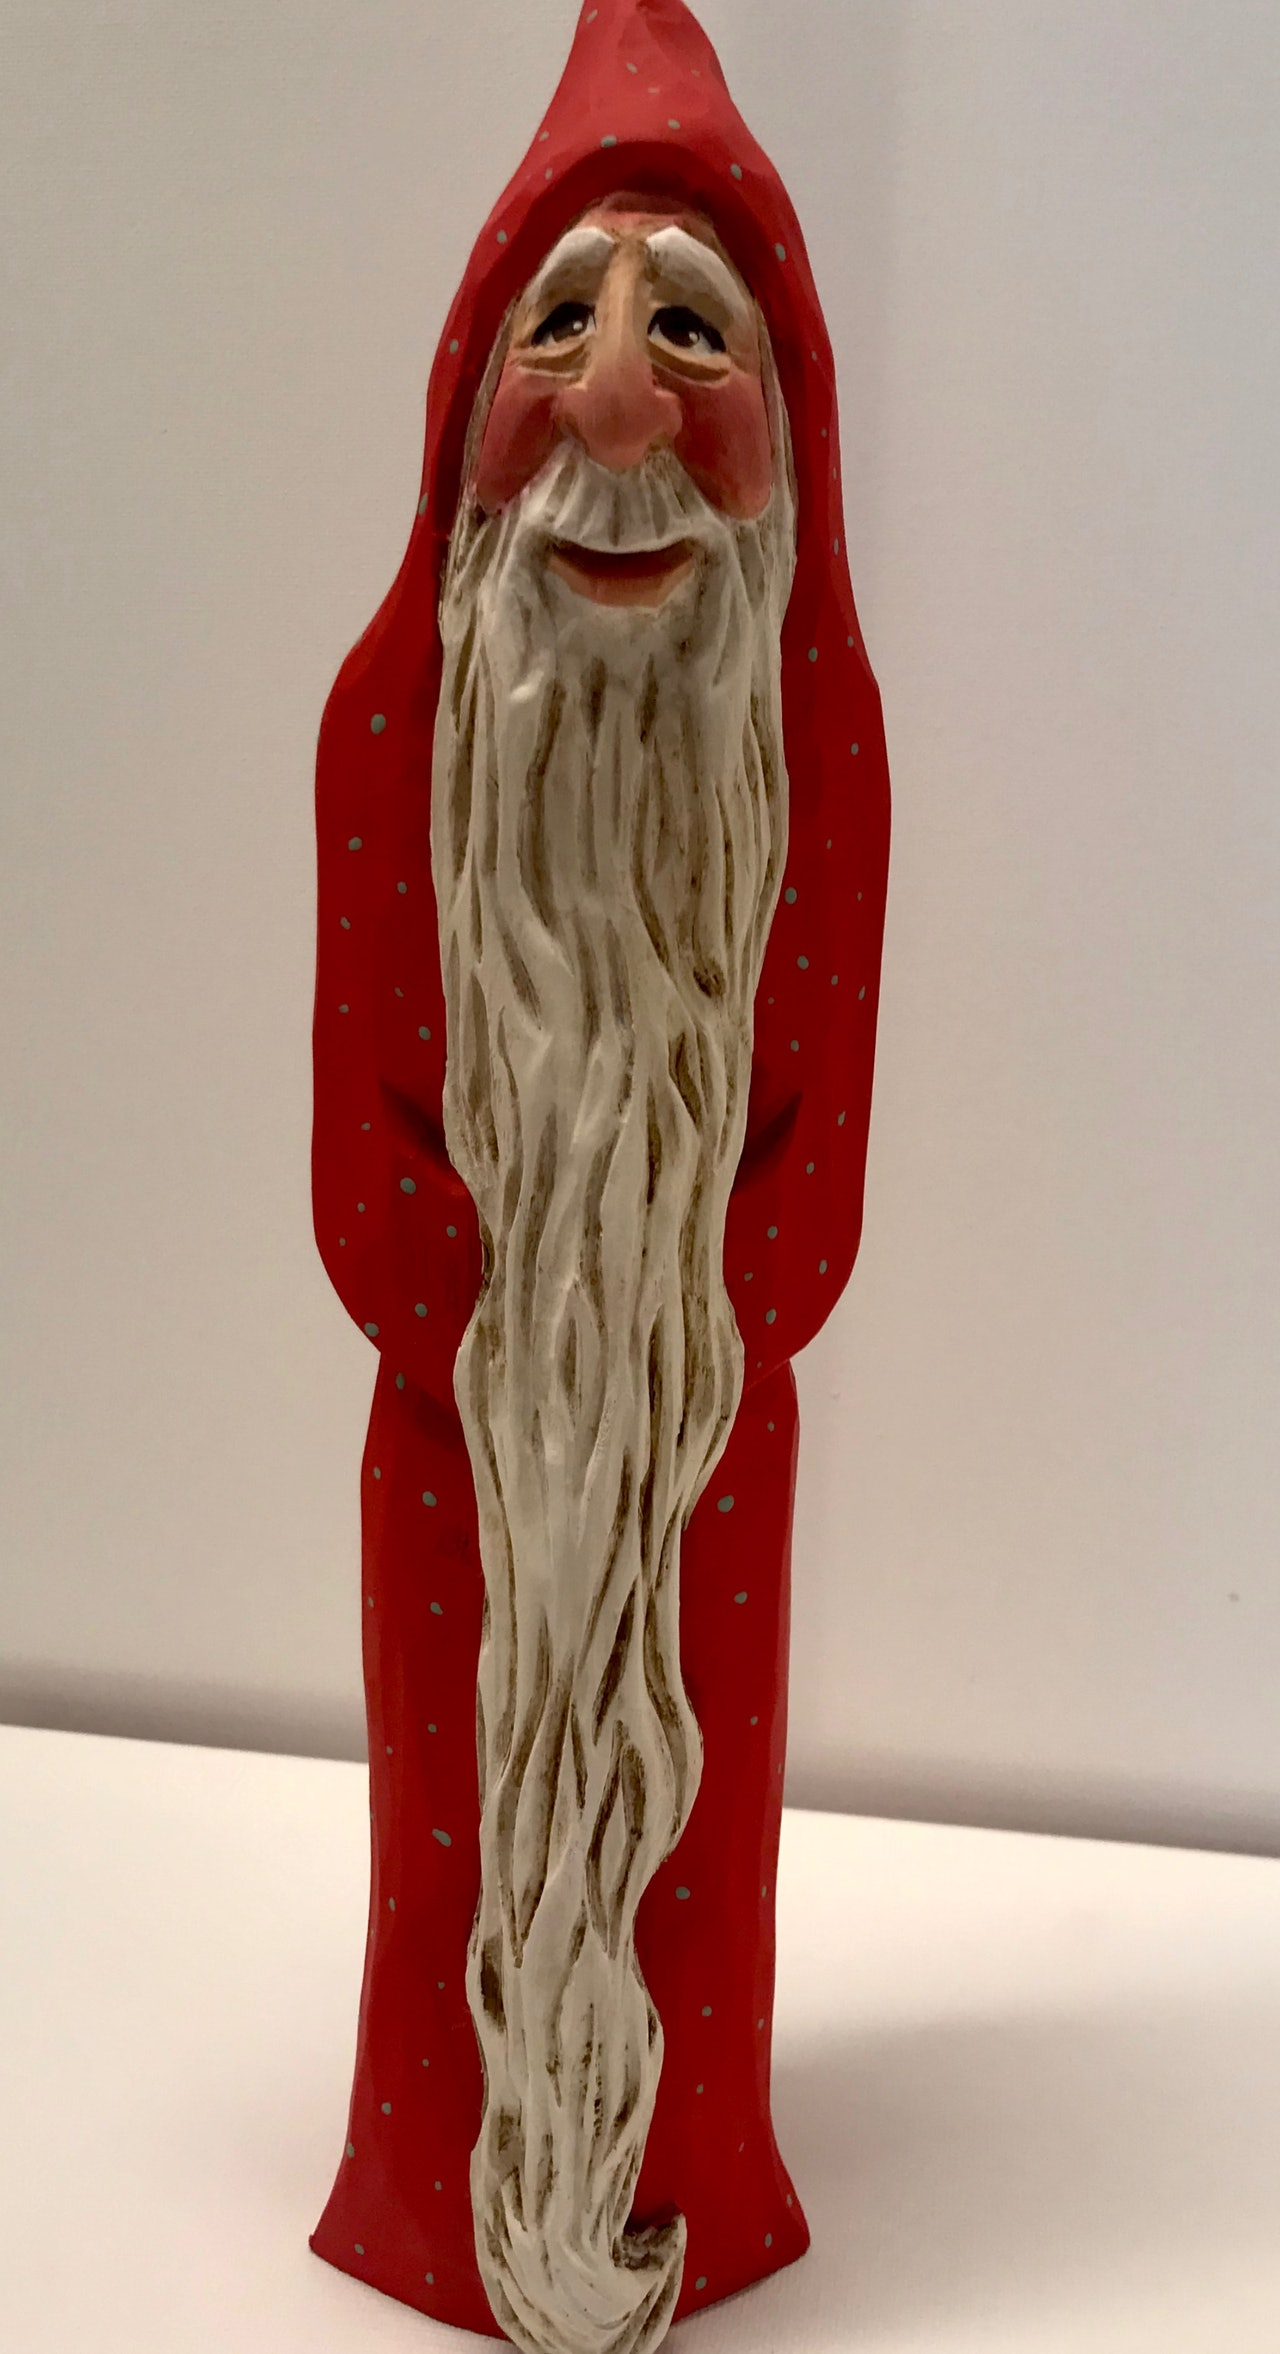 Tall Santa in Red